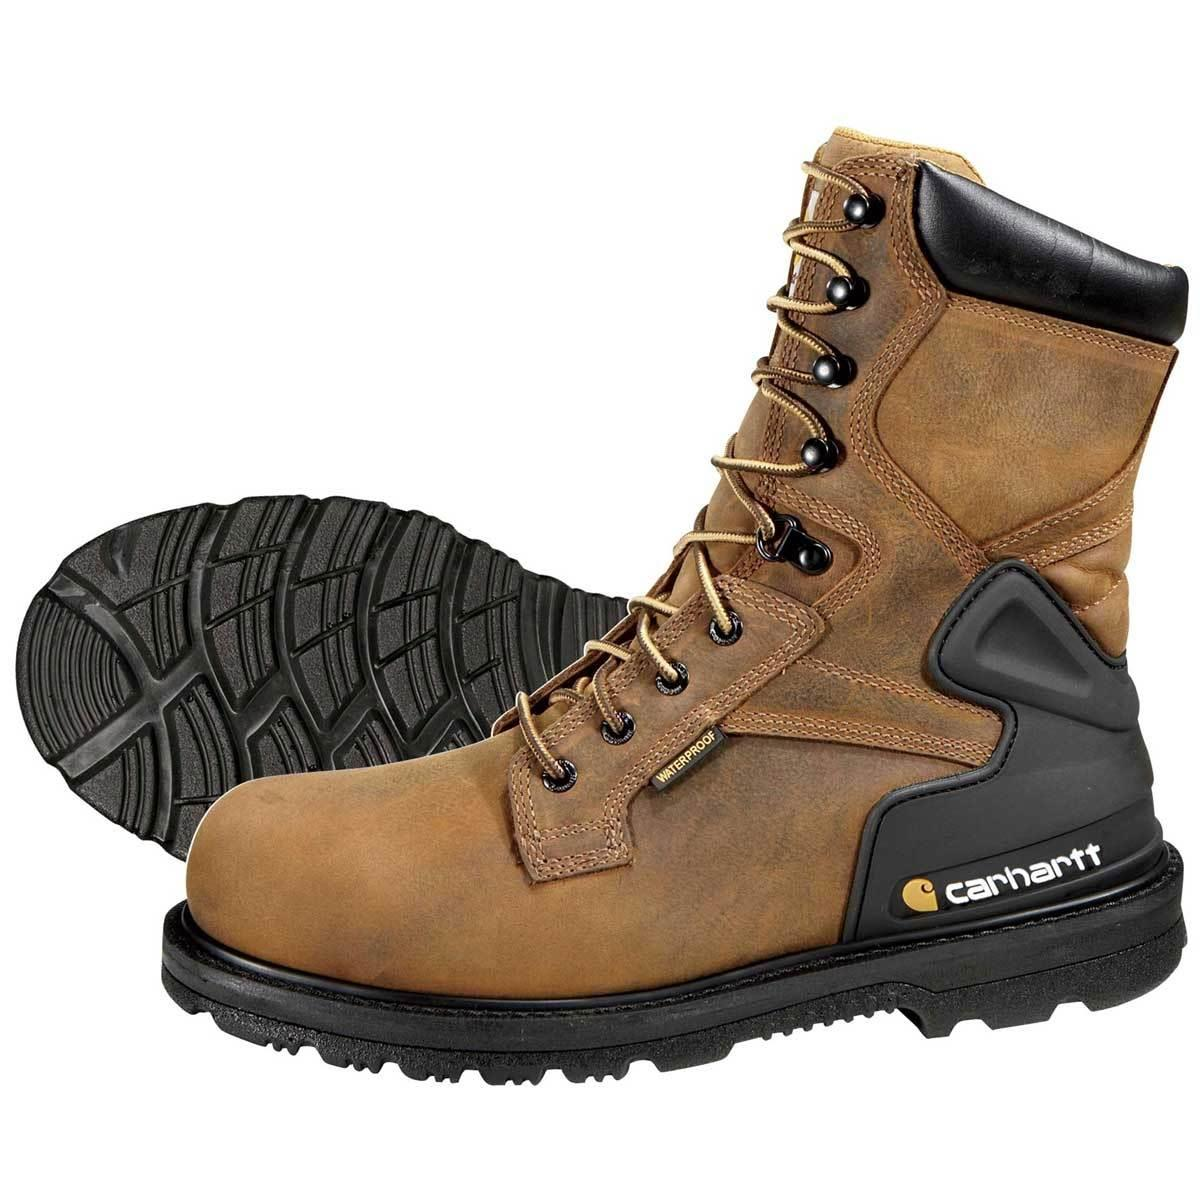 Waterproof Steel Toe Work Boots Q709iOuY